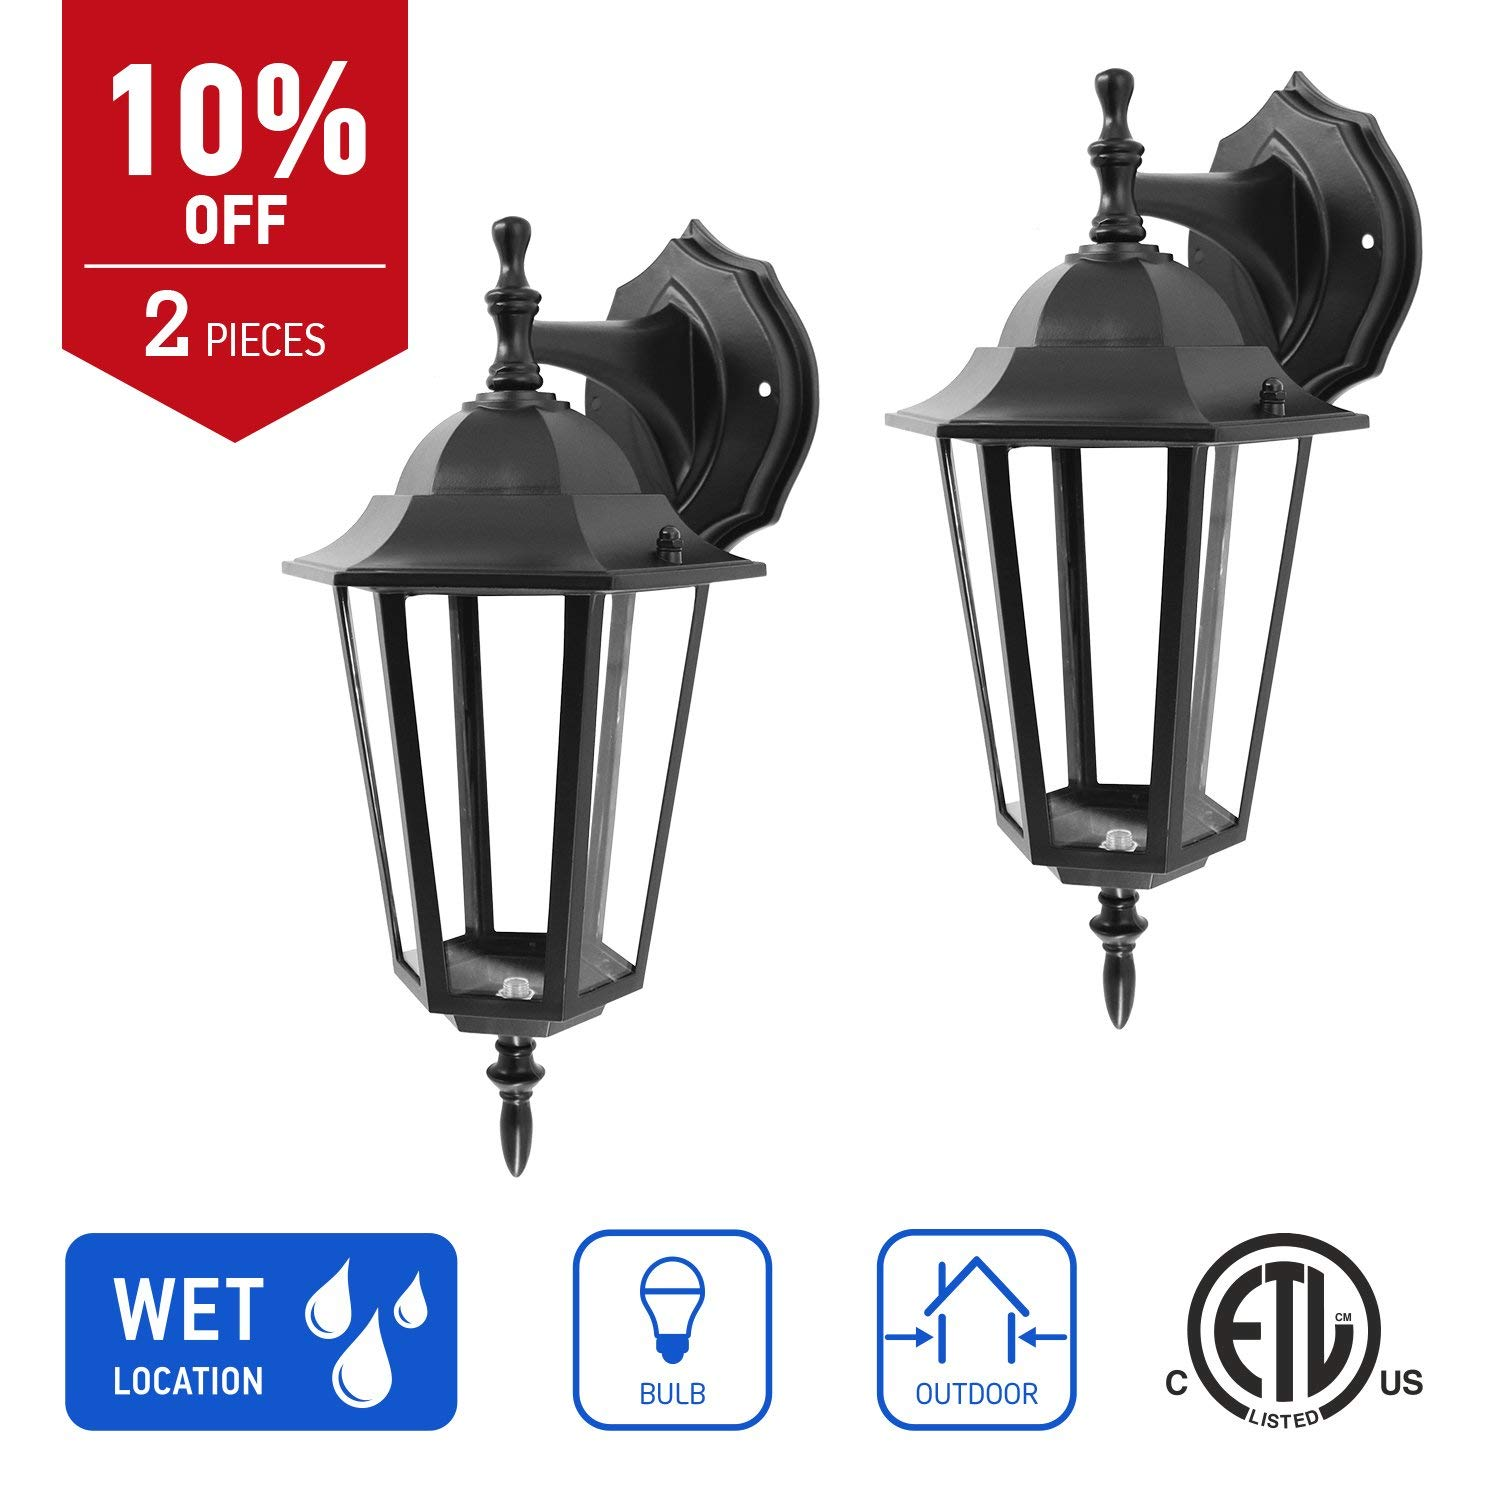 IN HOME 1-Light Outdoor Exterior Wall Down Lantern, Traditional Porch Patio Lighting Fixture L01 with One E26 Base, Water-Proof, Black Cast Aluminum Housing, Clear Glass Panels, (2 Pack) ETL Listed